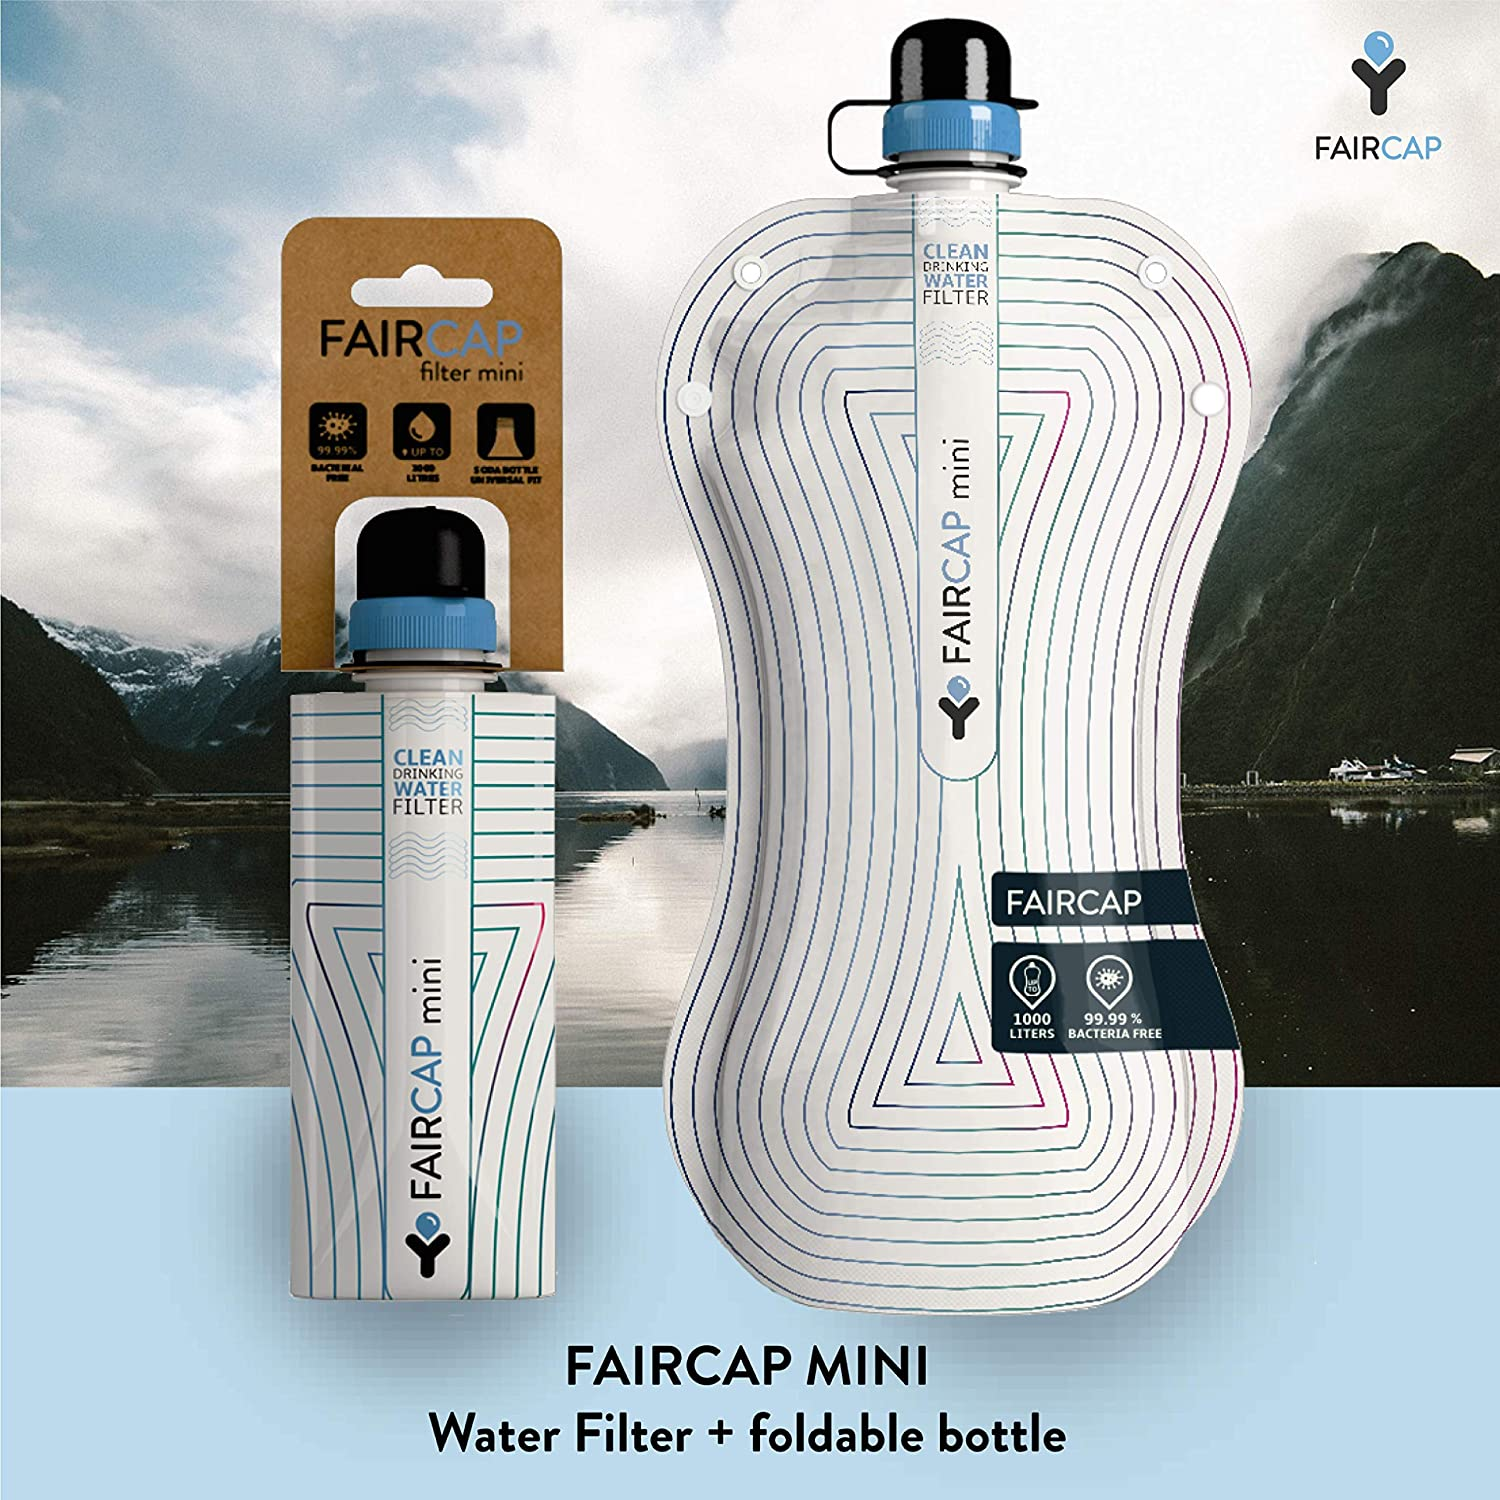 For 28mm PET bottles. Filters 99.99/% of bacteria and other pathogens Ideal for travel hiking Faircap Mini Portable Water Purifier camping and adventure sports